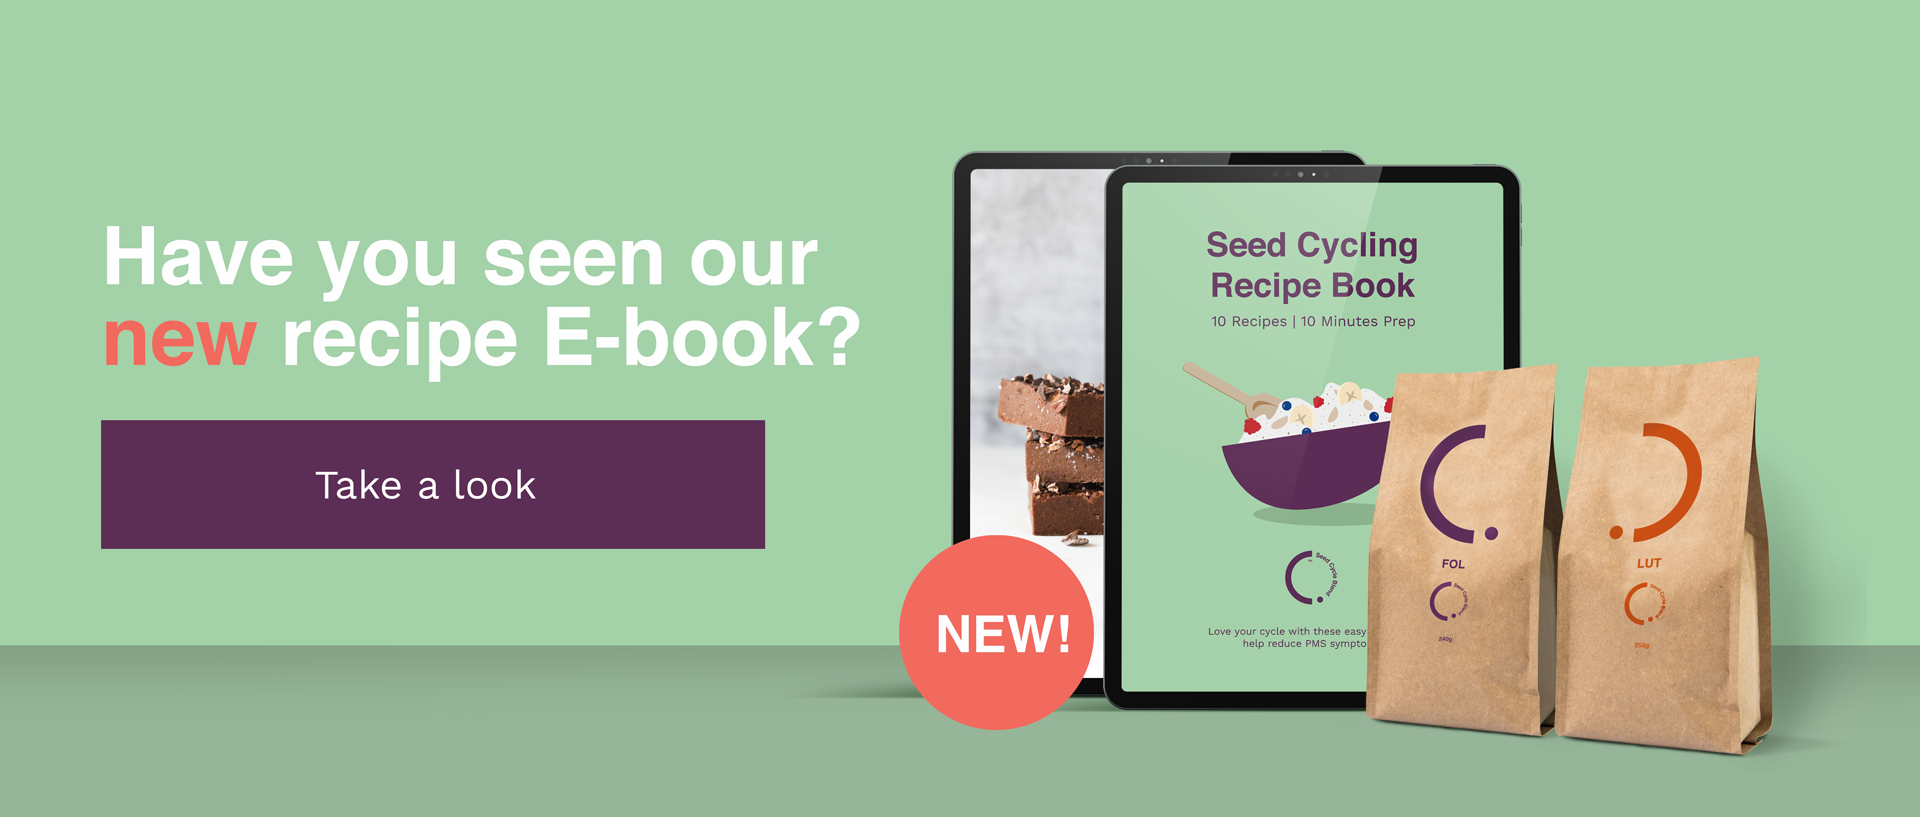 seed-cycling-recipes-book-e-book-seed-cycle-blend